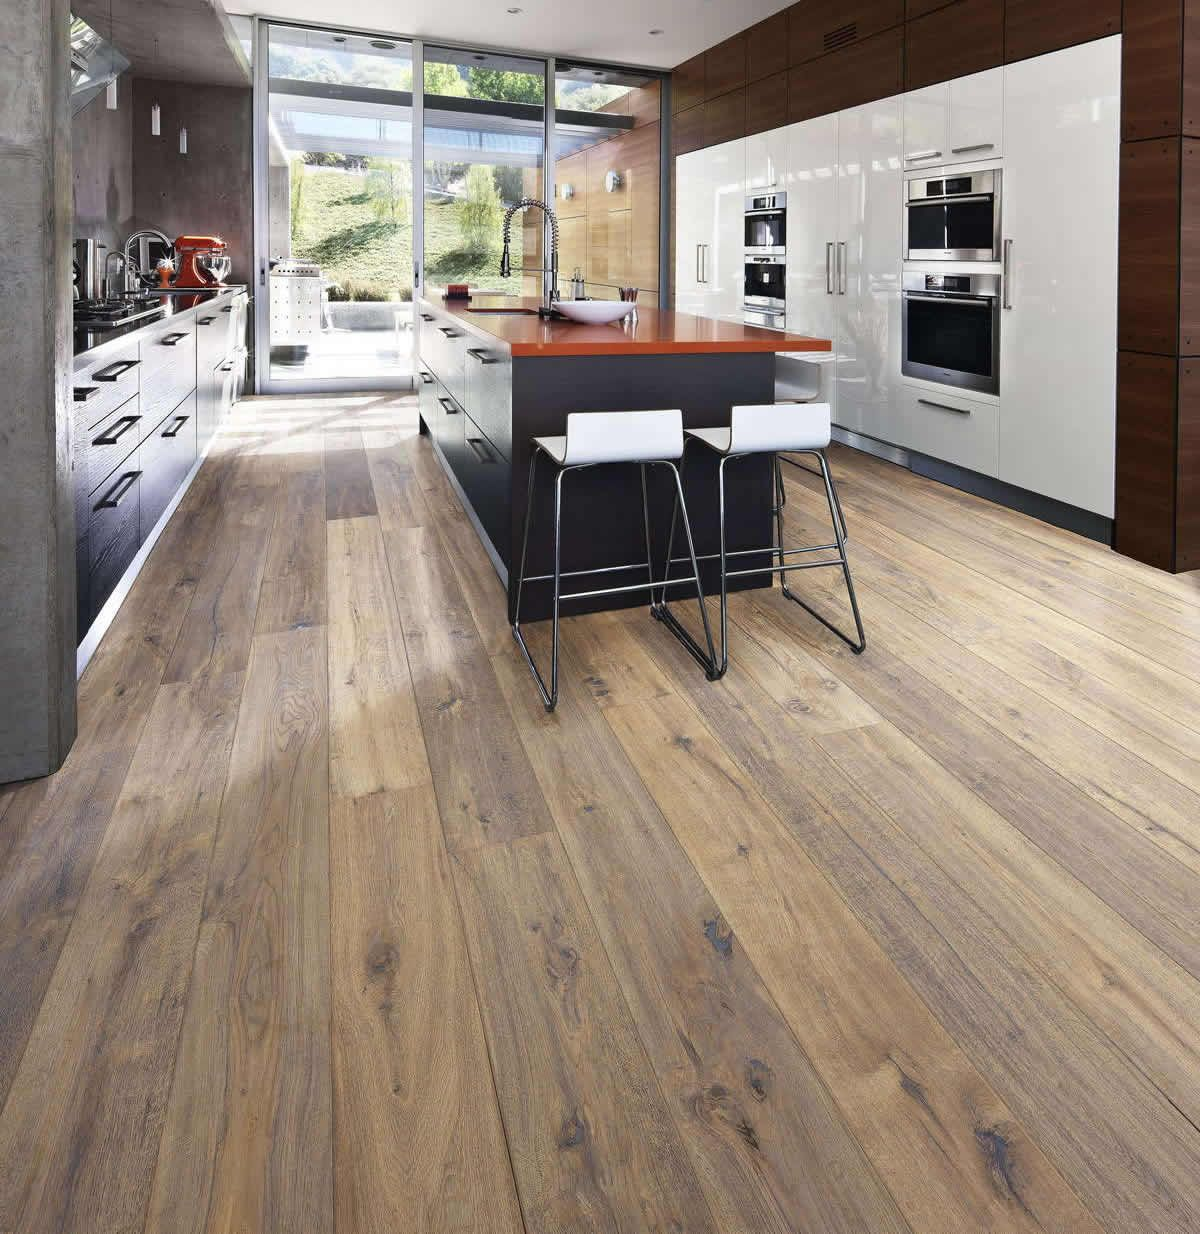 Engineered Wood Flooring Kitchen Kahrs Artisan Oak Concrete Engineered Wood Flooring Engineered